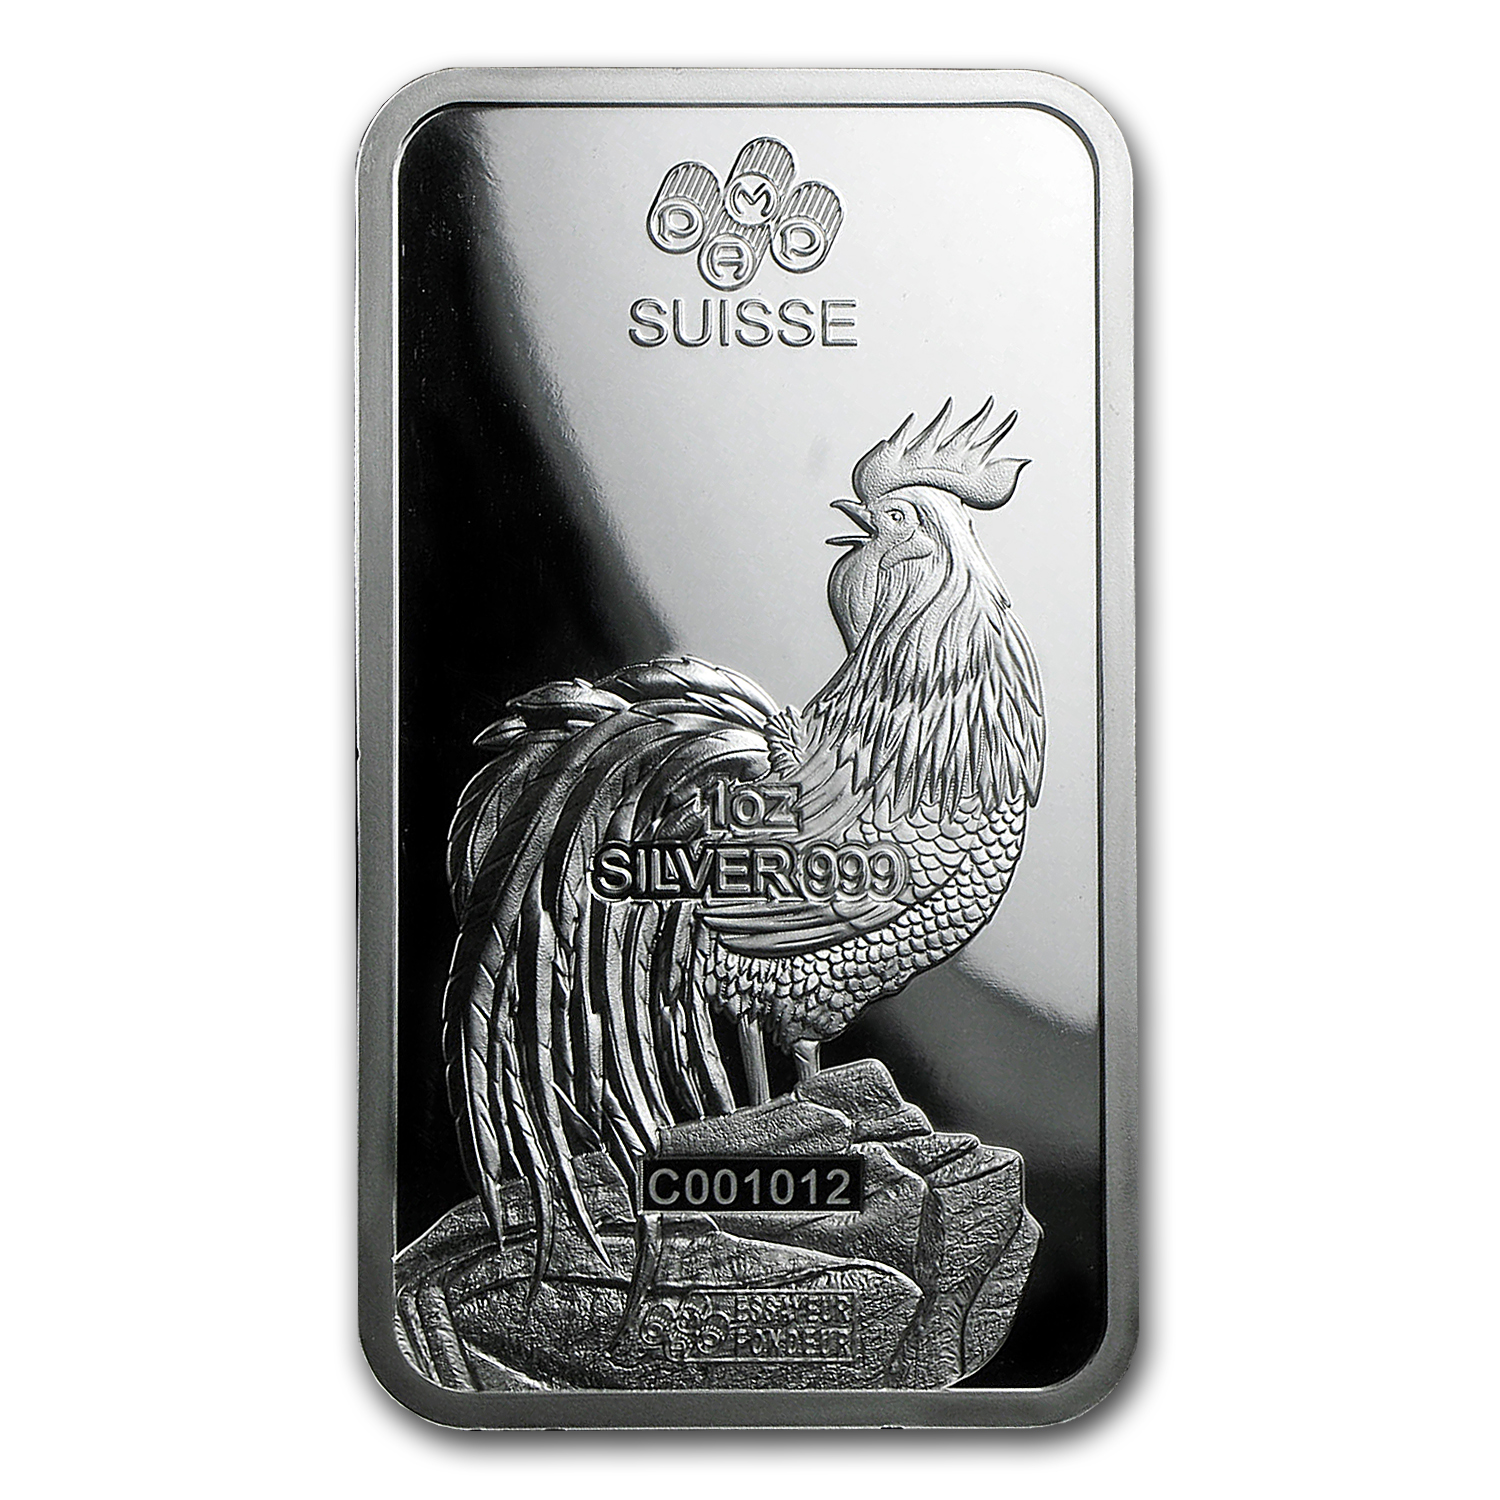 1 oz Silver Bar - PAMP Suisse Year of the Rooster (No Assay)